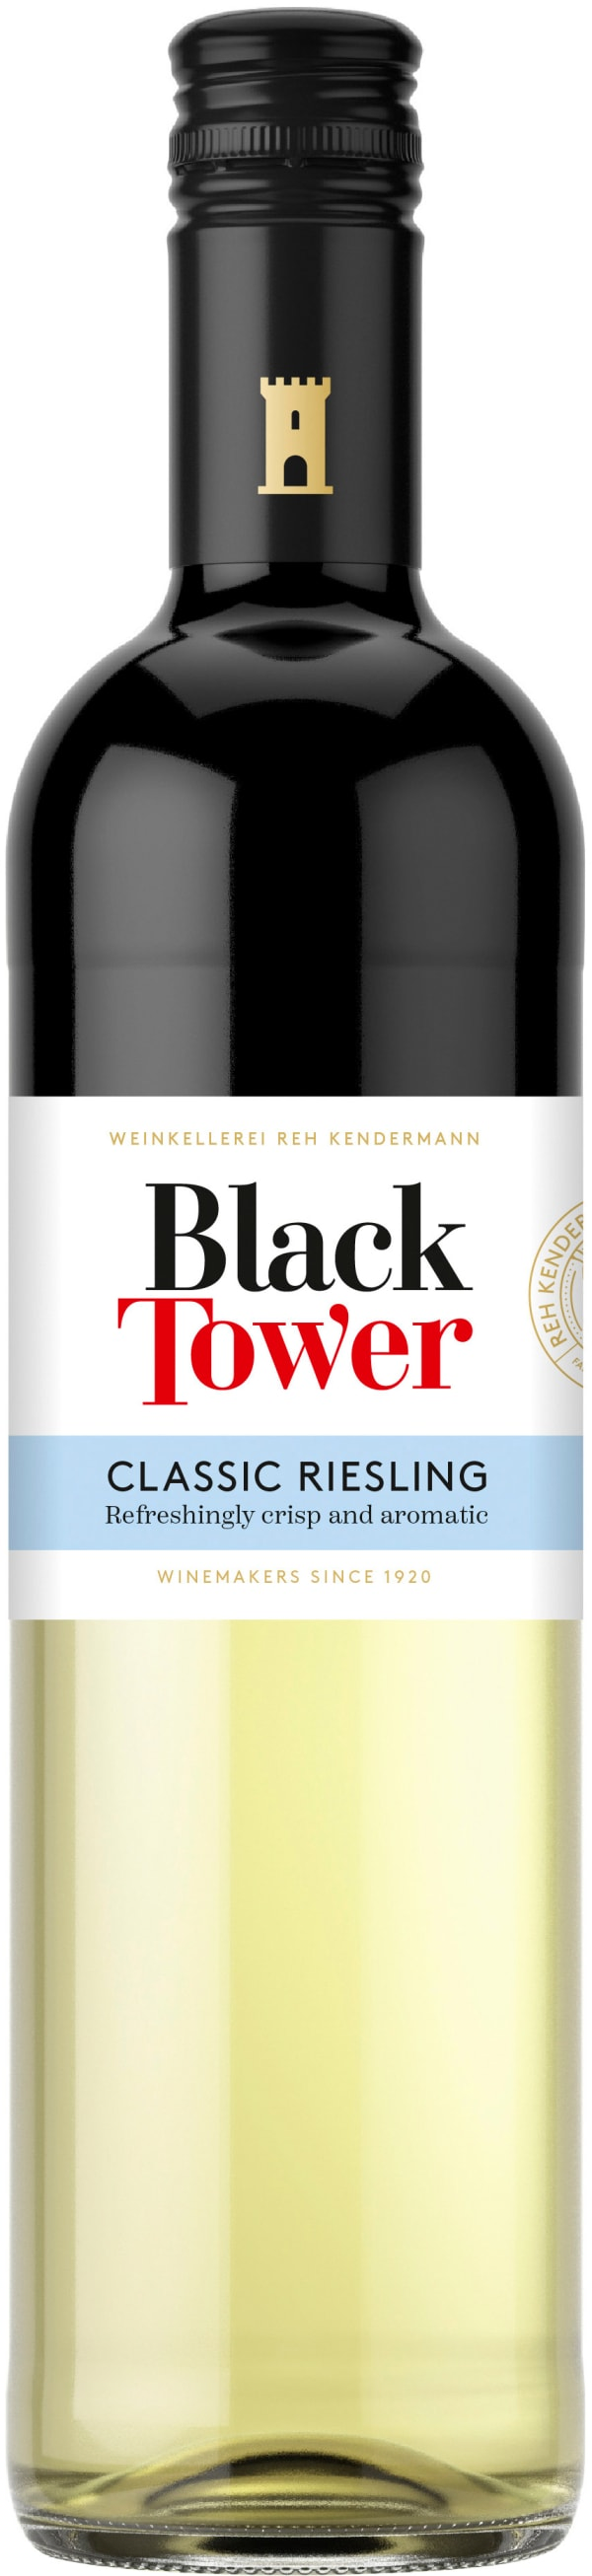 Black Tower Classic Riesling 2018